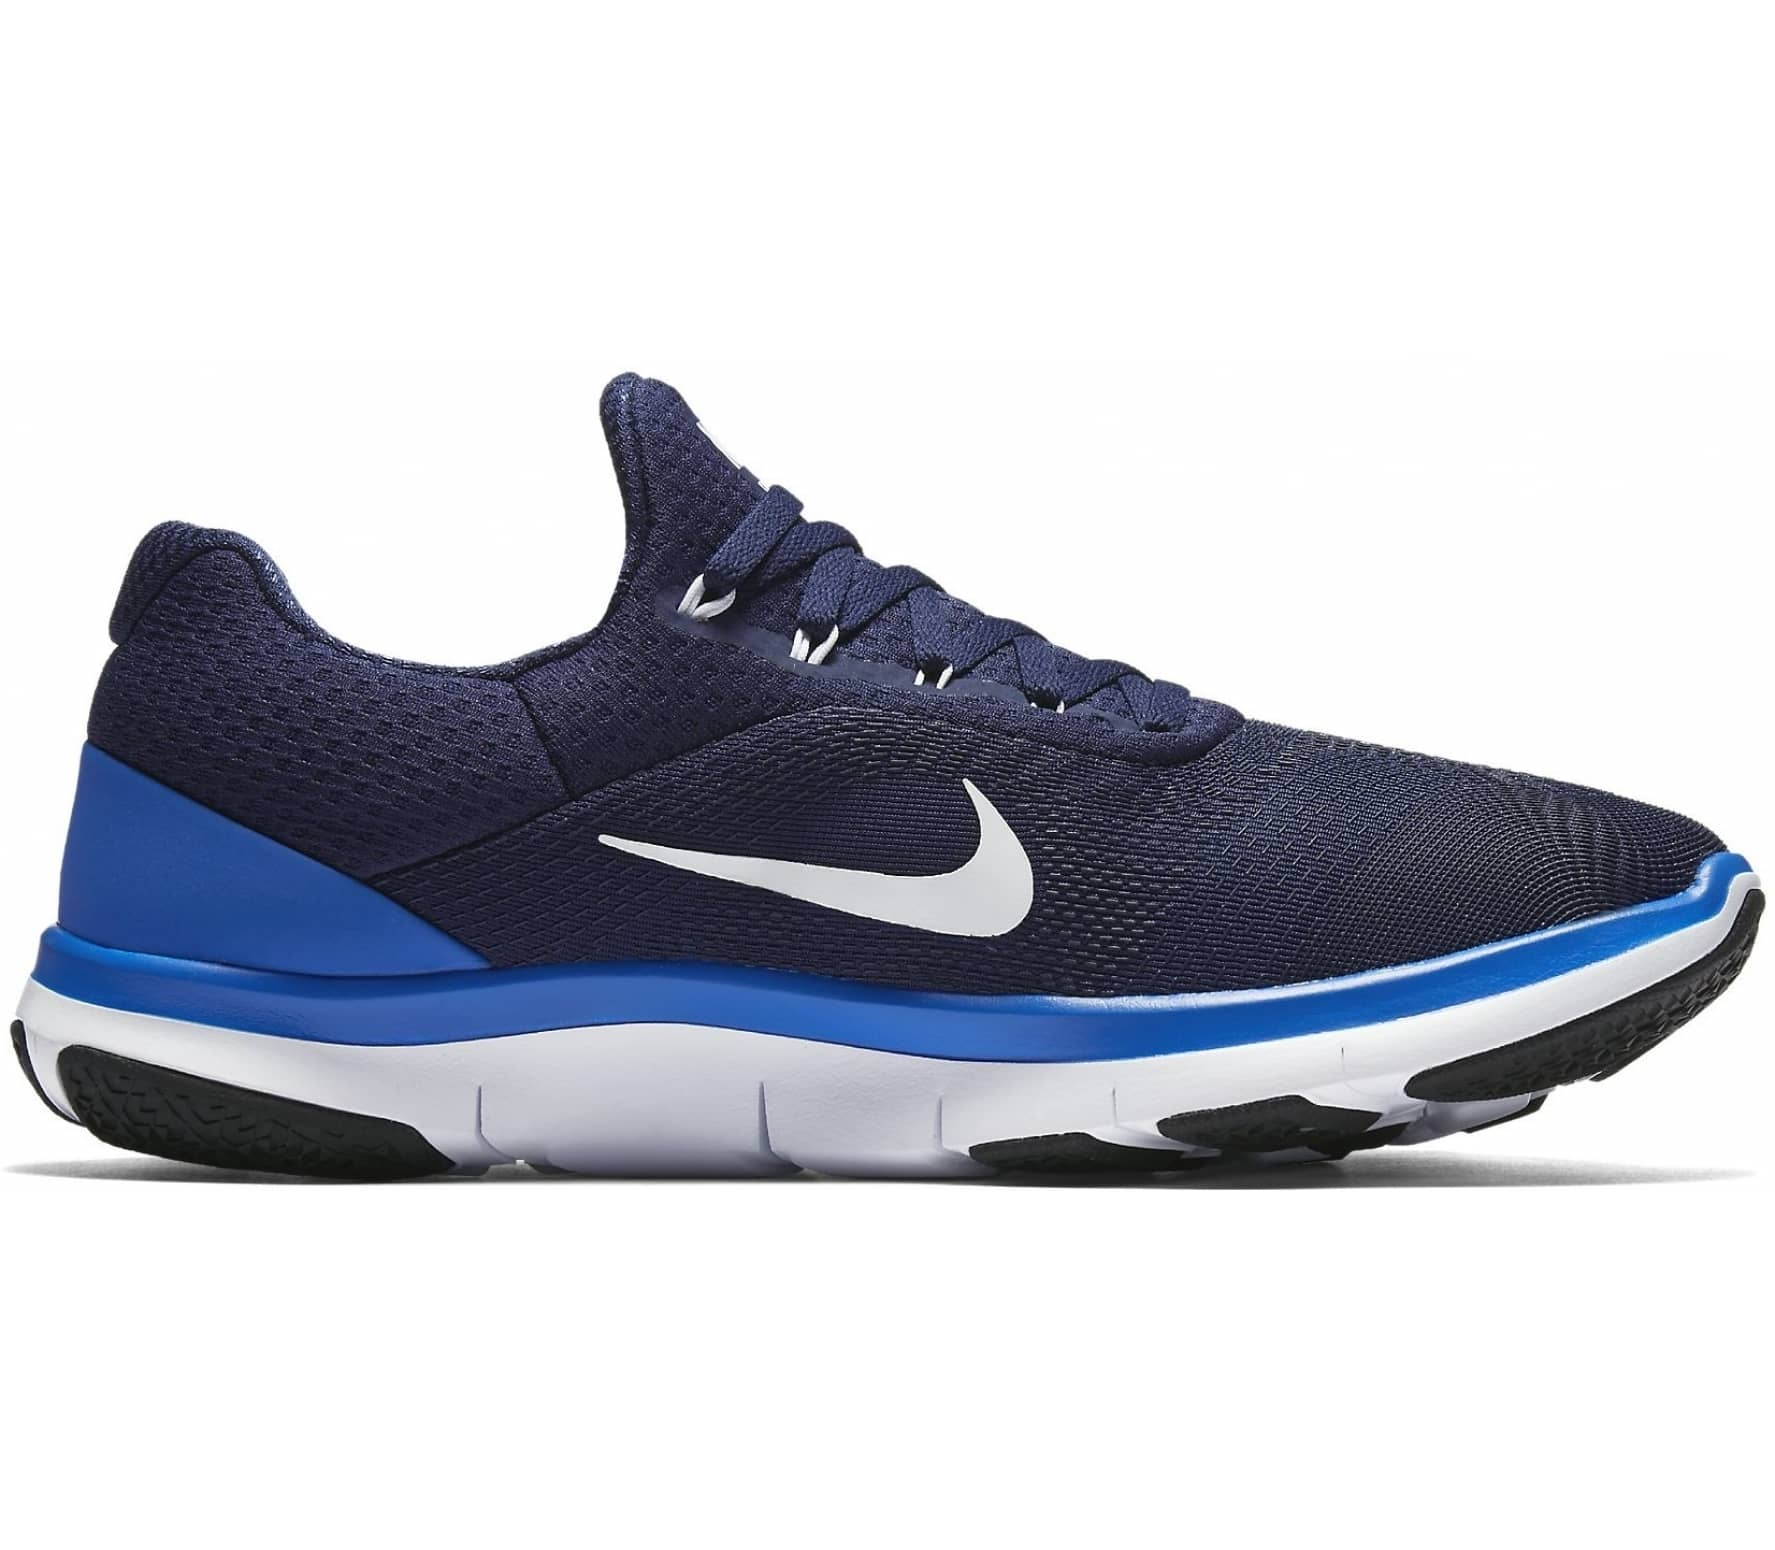 a90899cad6bf Nike - Free Trainer v7 men s training shoes (blue white) - buy it at ...